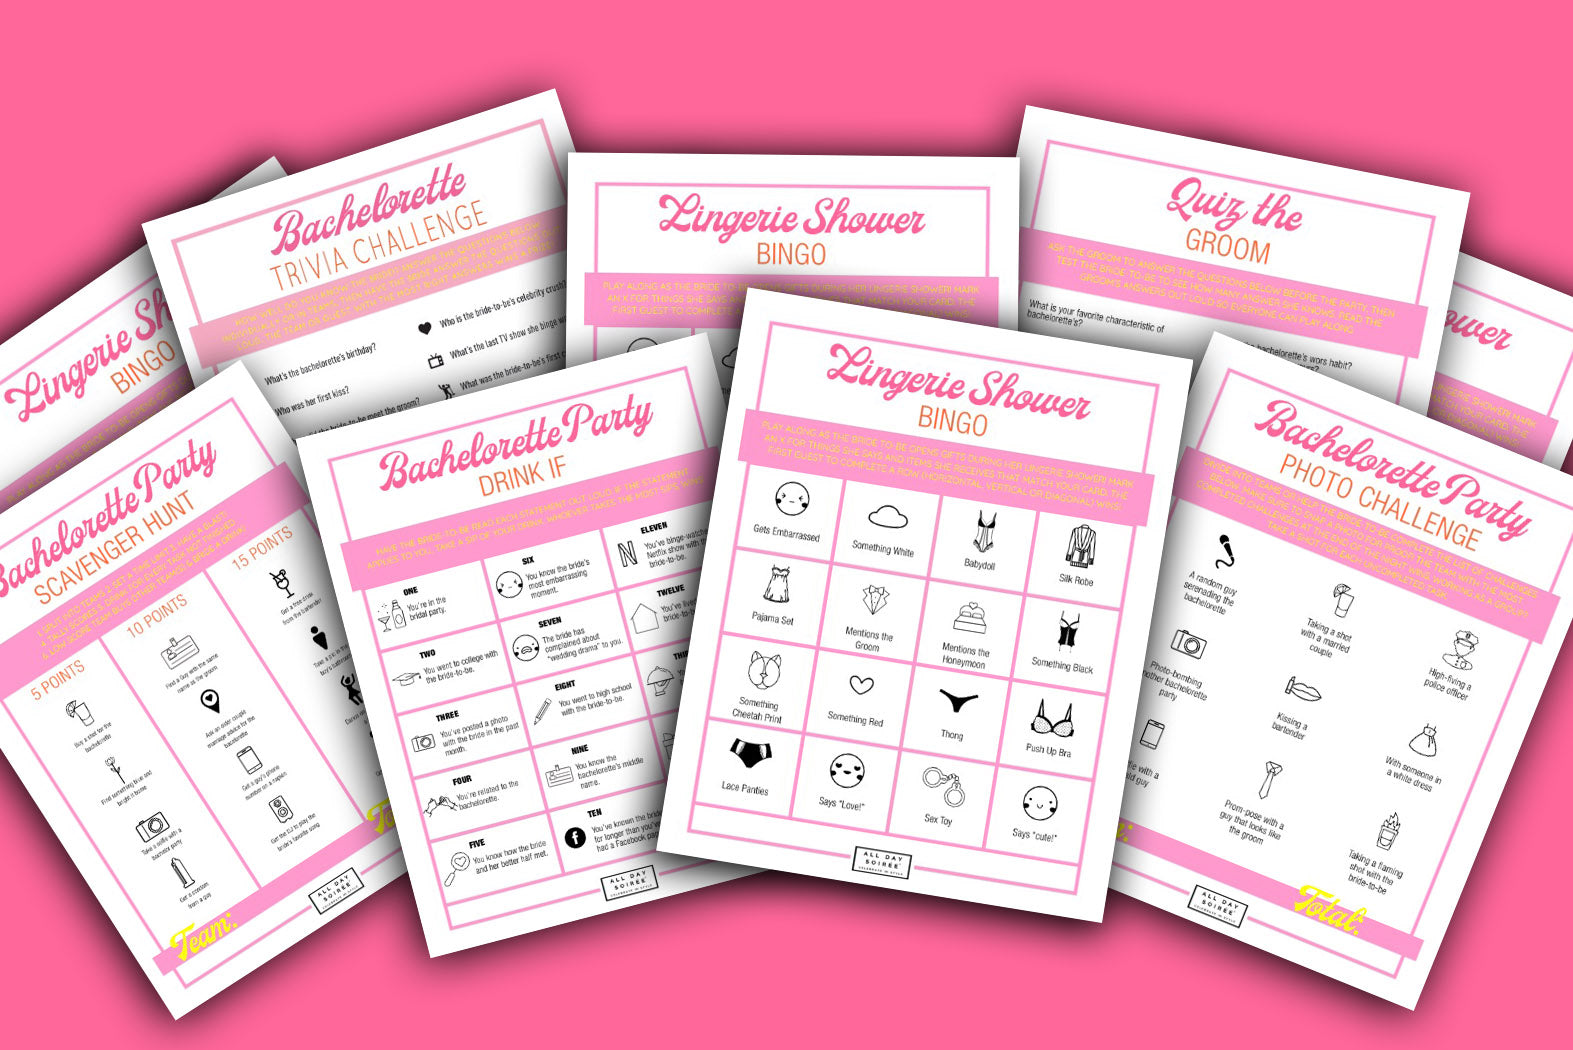 bachelorette party games scavenger hunt drink if quiz the groom fun bridal shower games cards free printable instant download